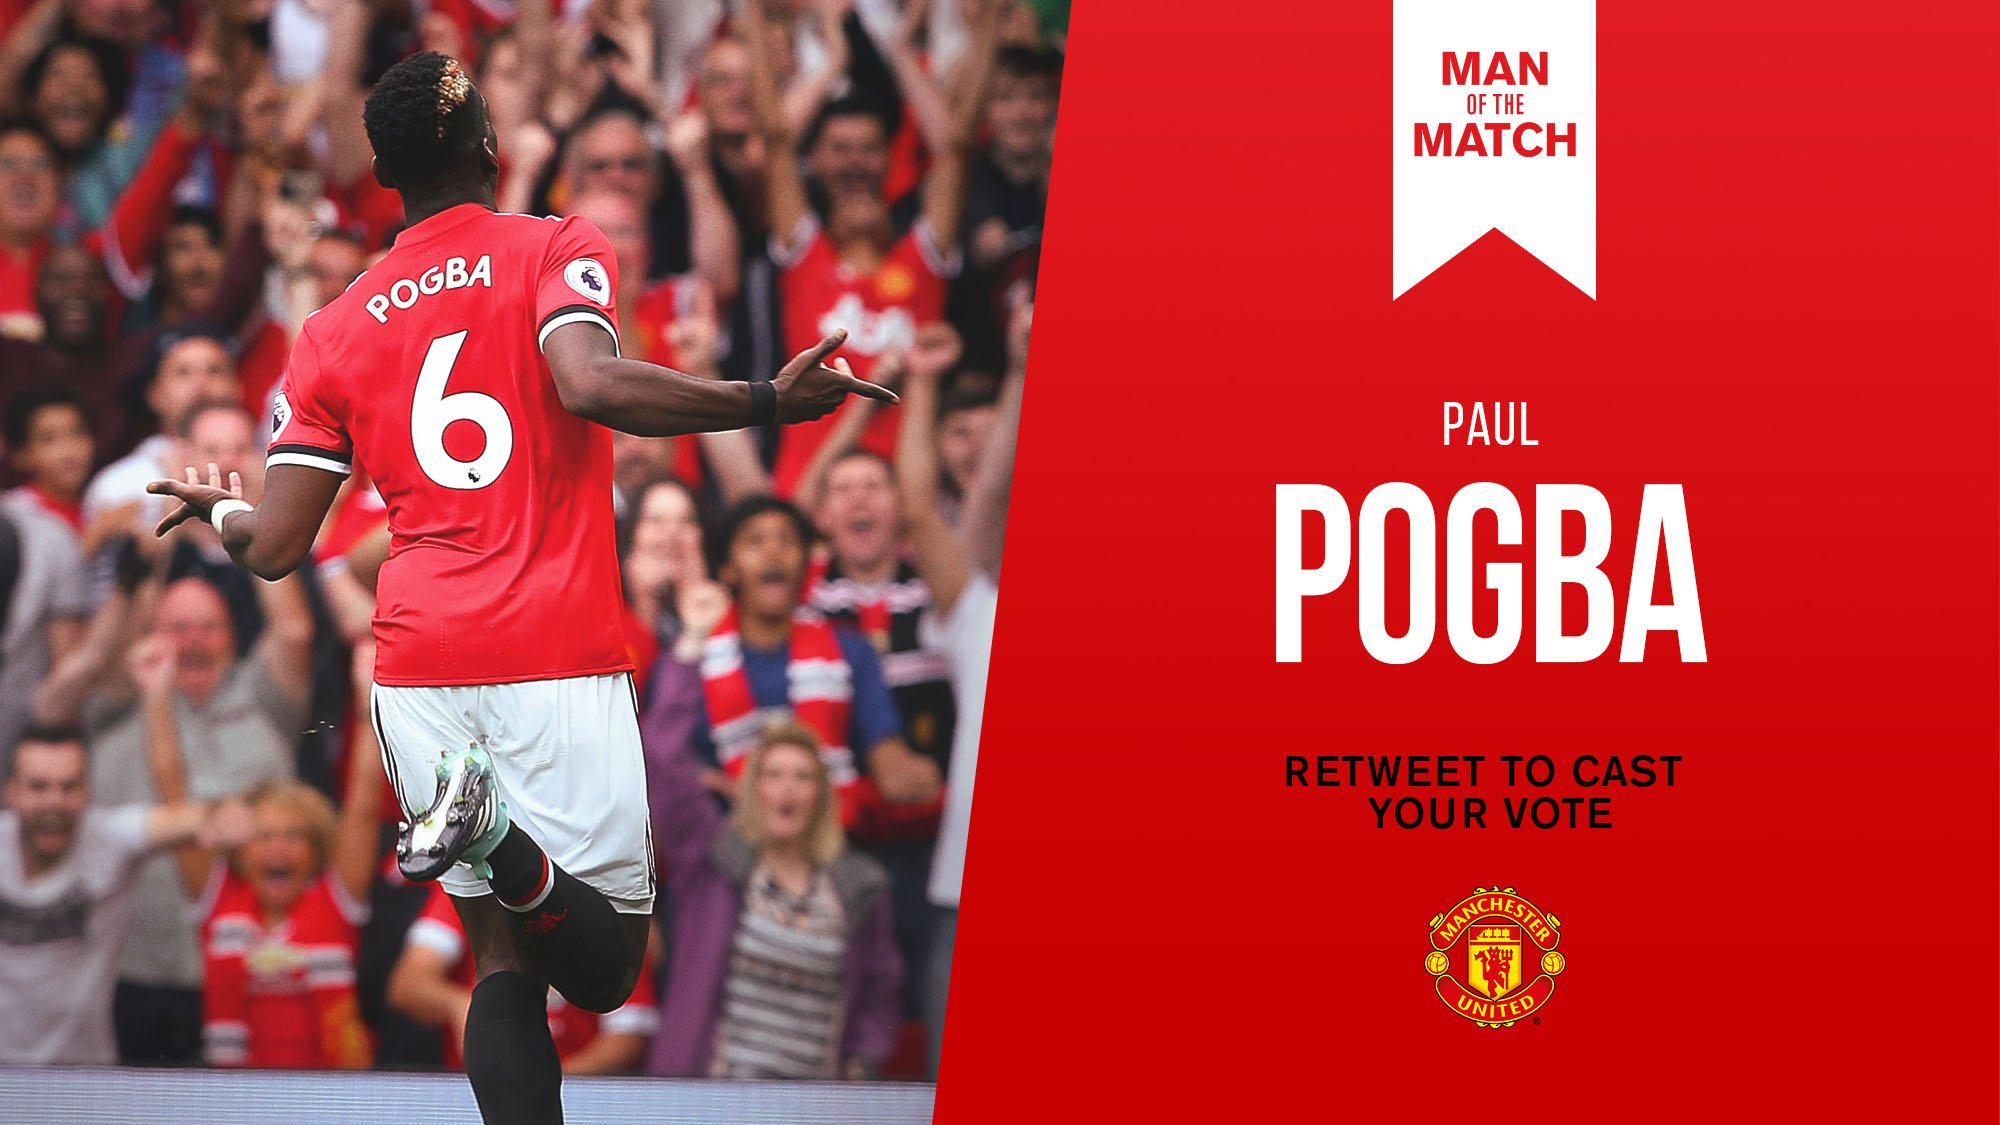 Retweet to vote for @PaulPogba as #MUFC's Man of the Match against West Ham. https://t.co/N1TAzHcyqS